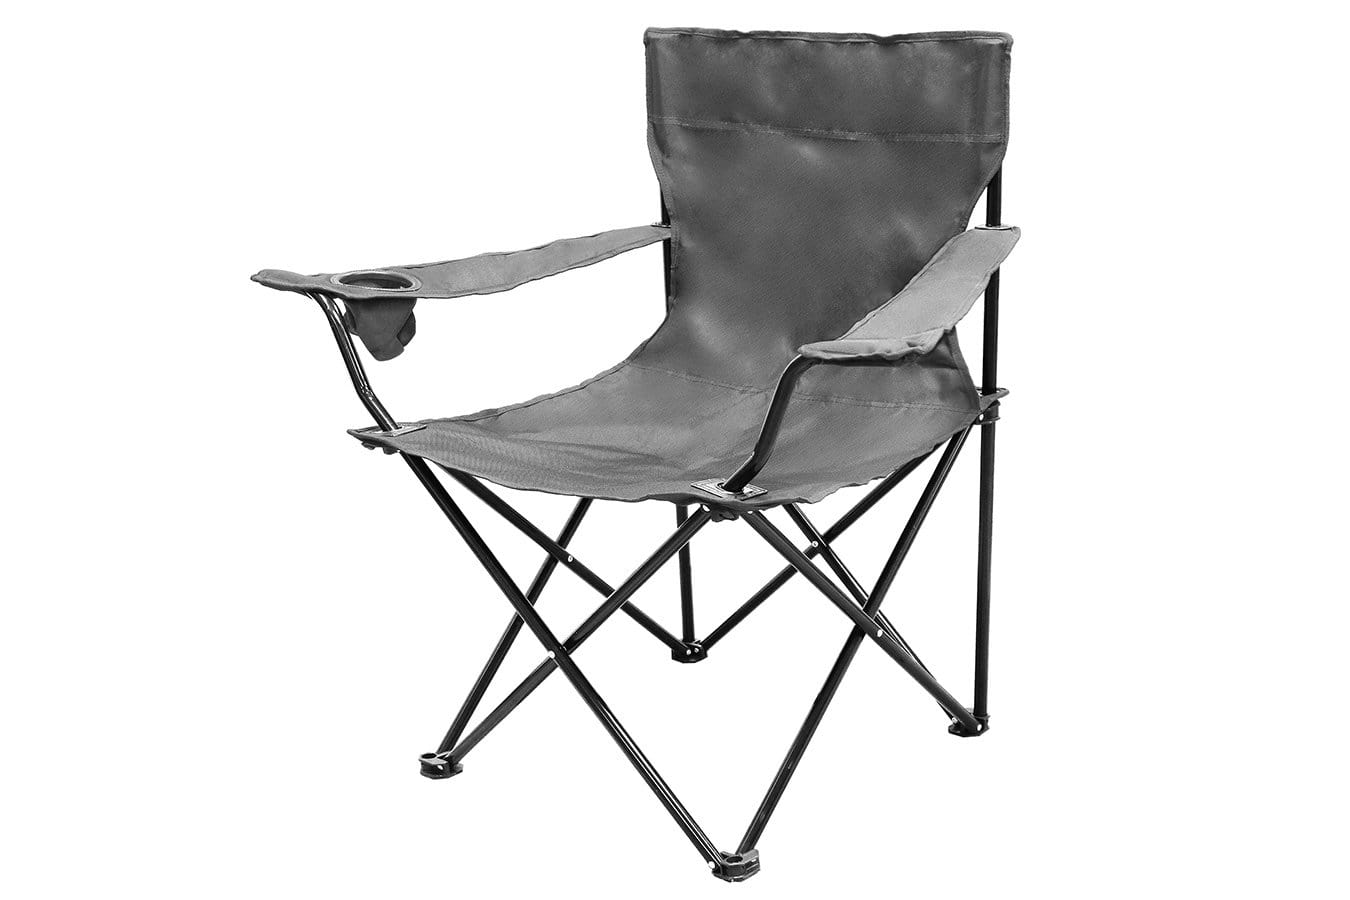 Sideline Chair - Single